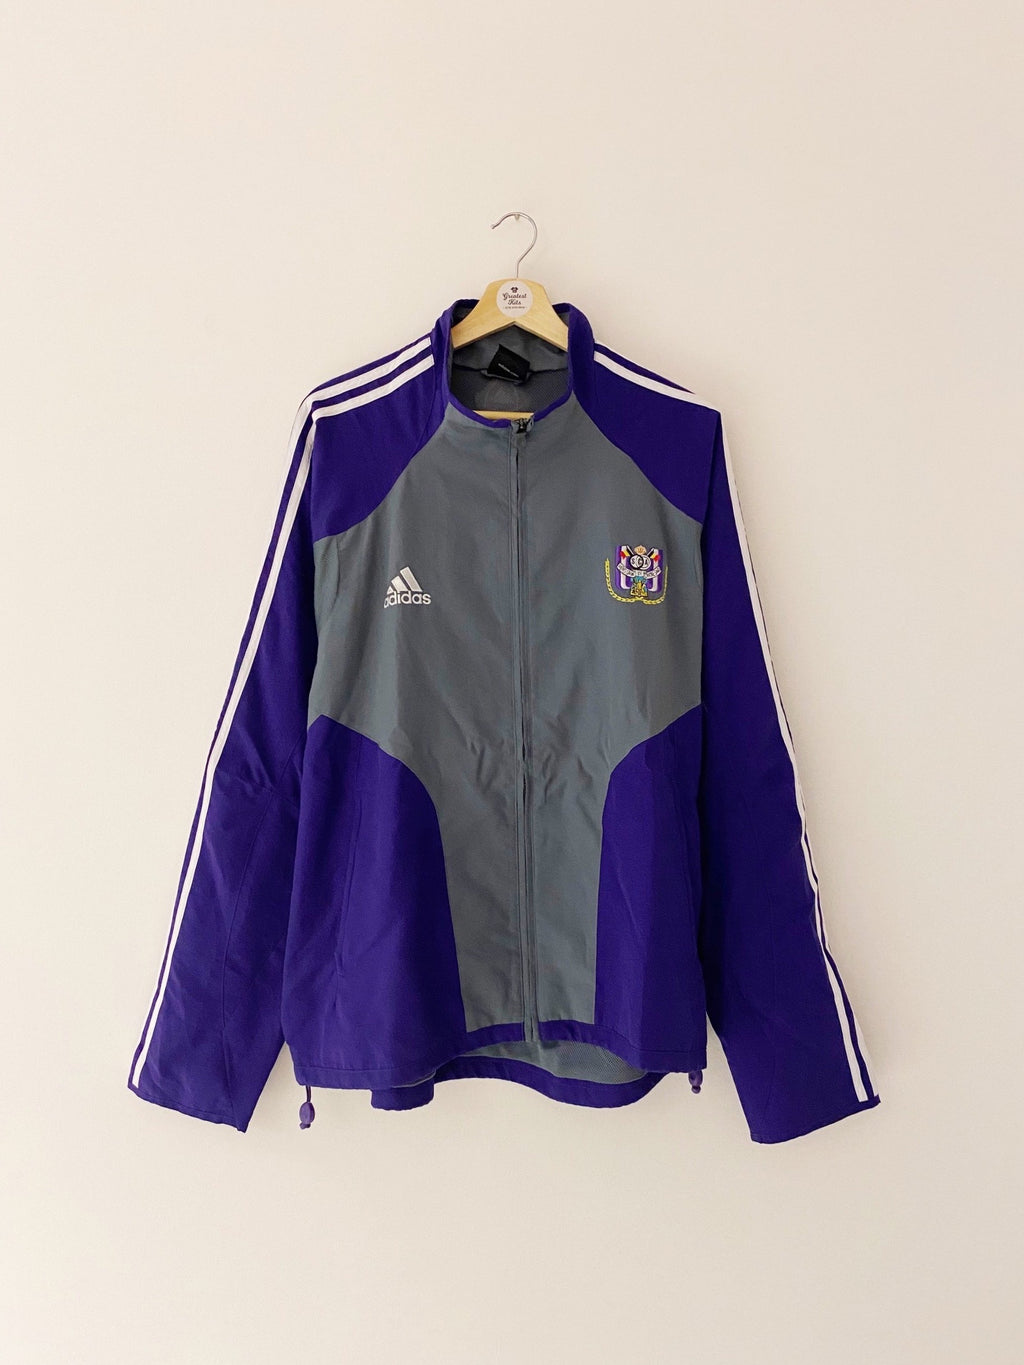 2004/05 Anderlecht Training Jacket (L/XL) 9/10